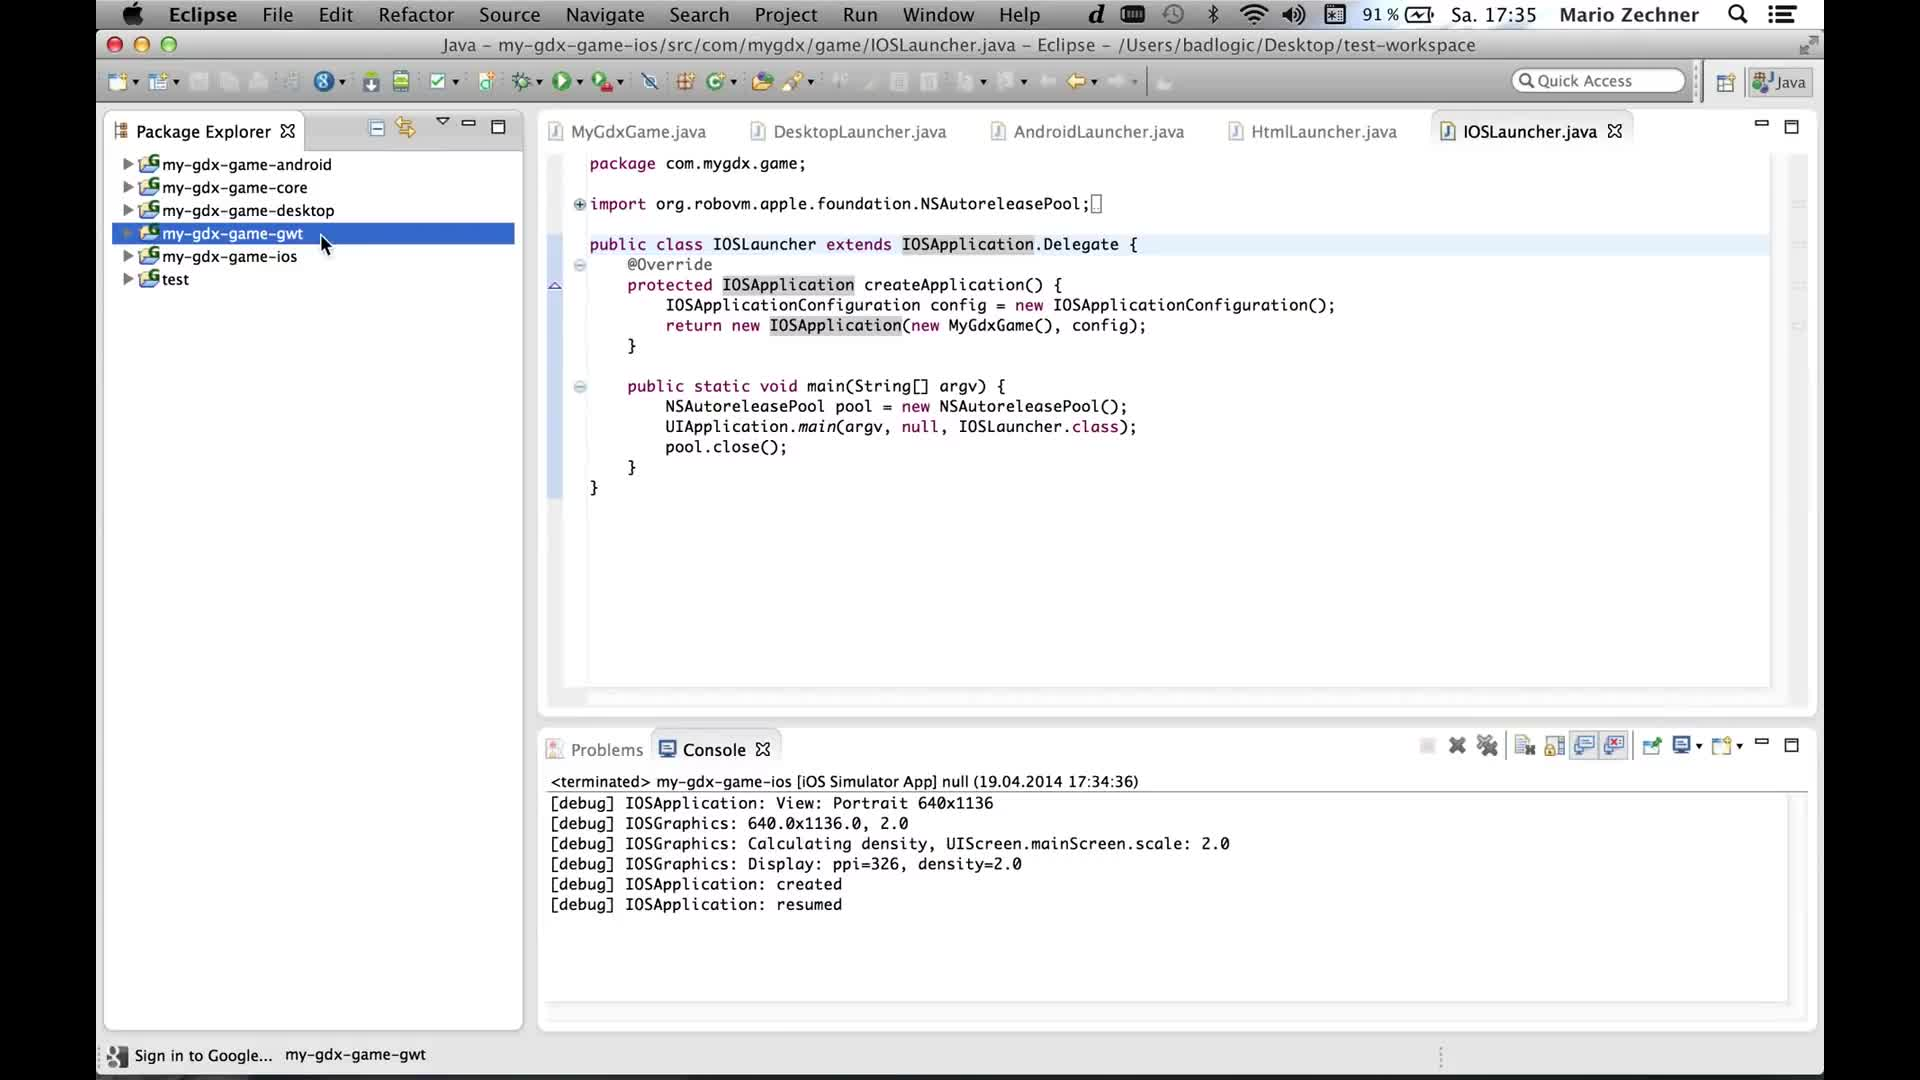 Running and Debugging in Eclipse